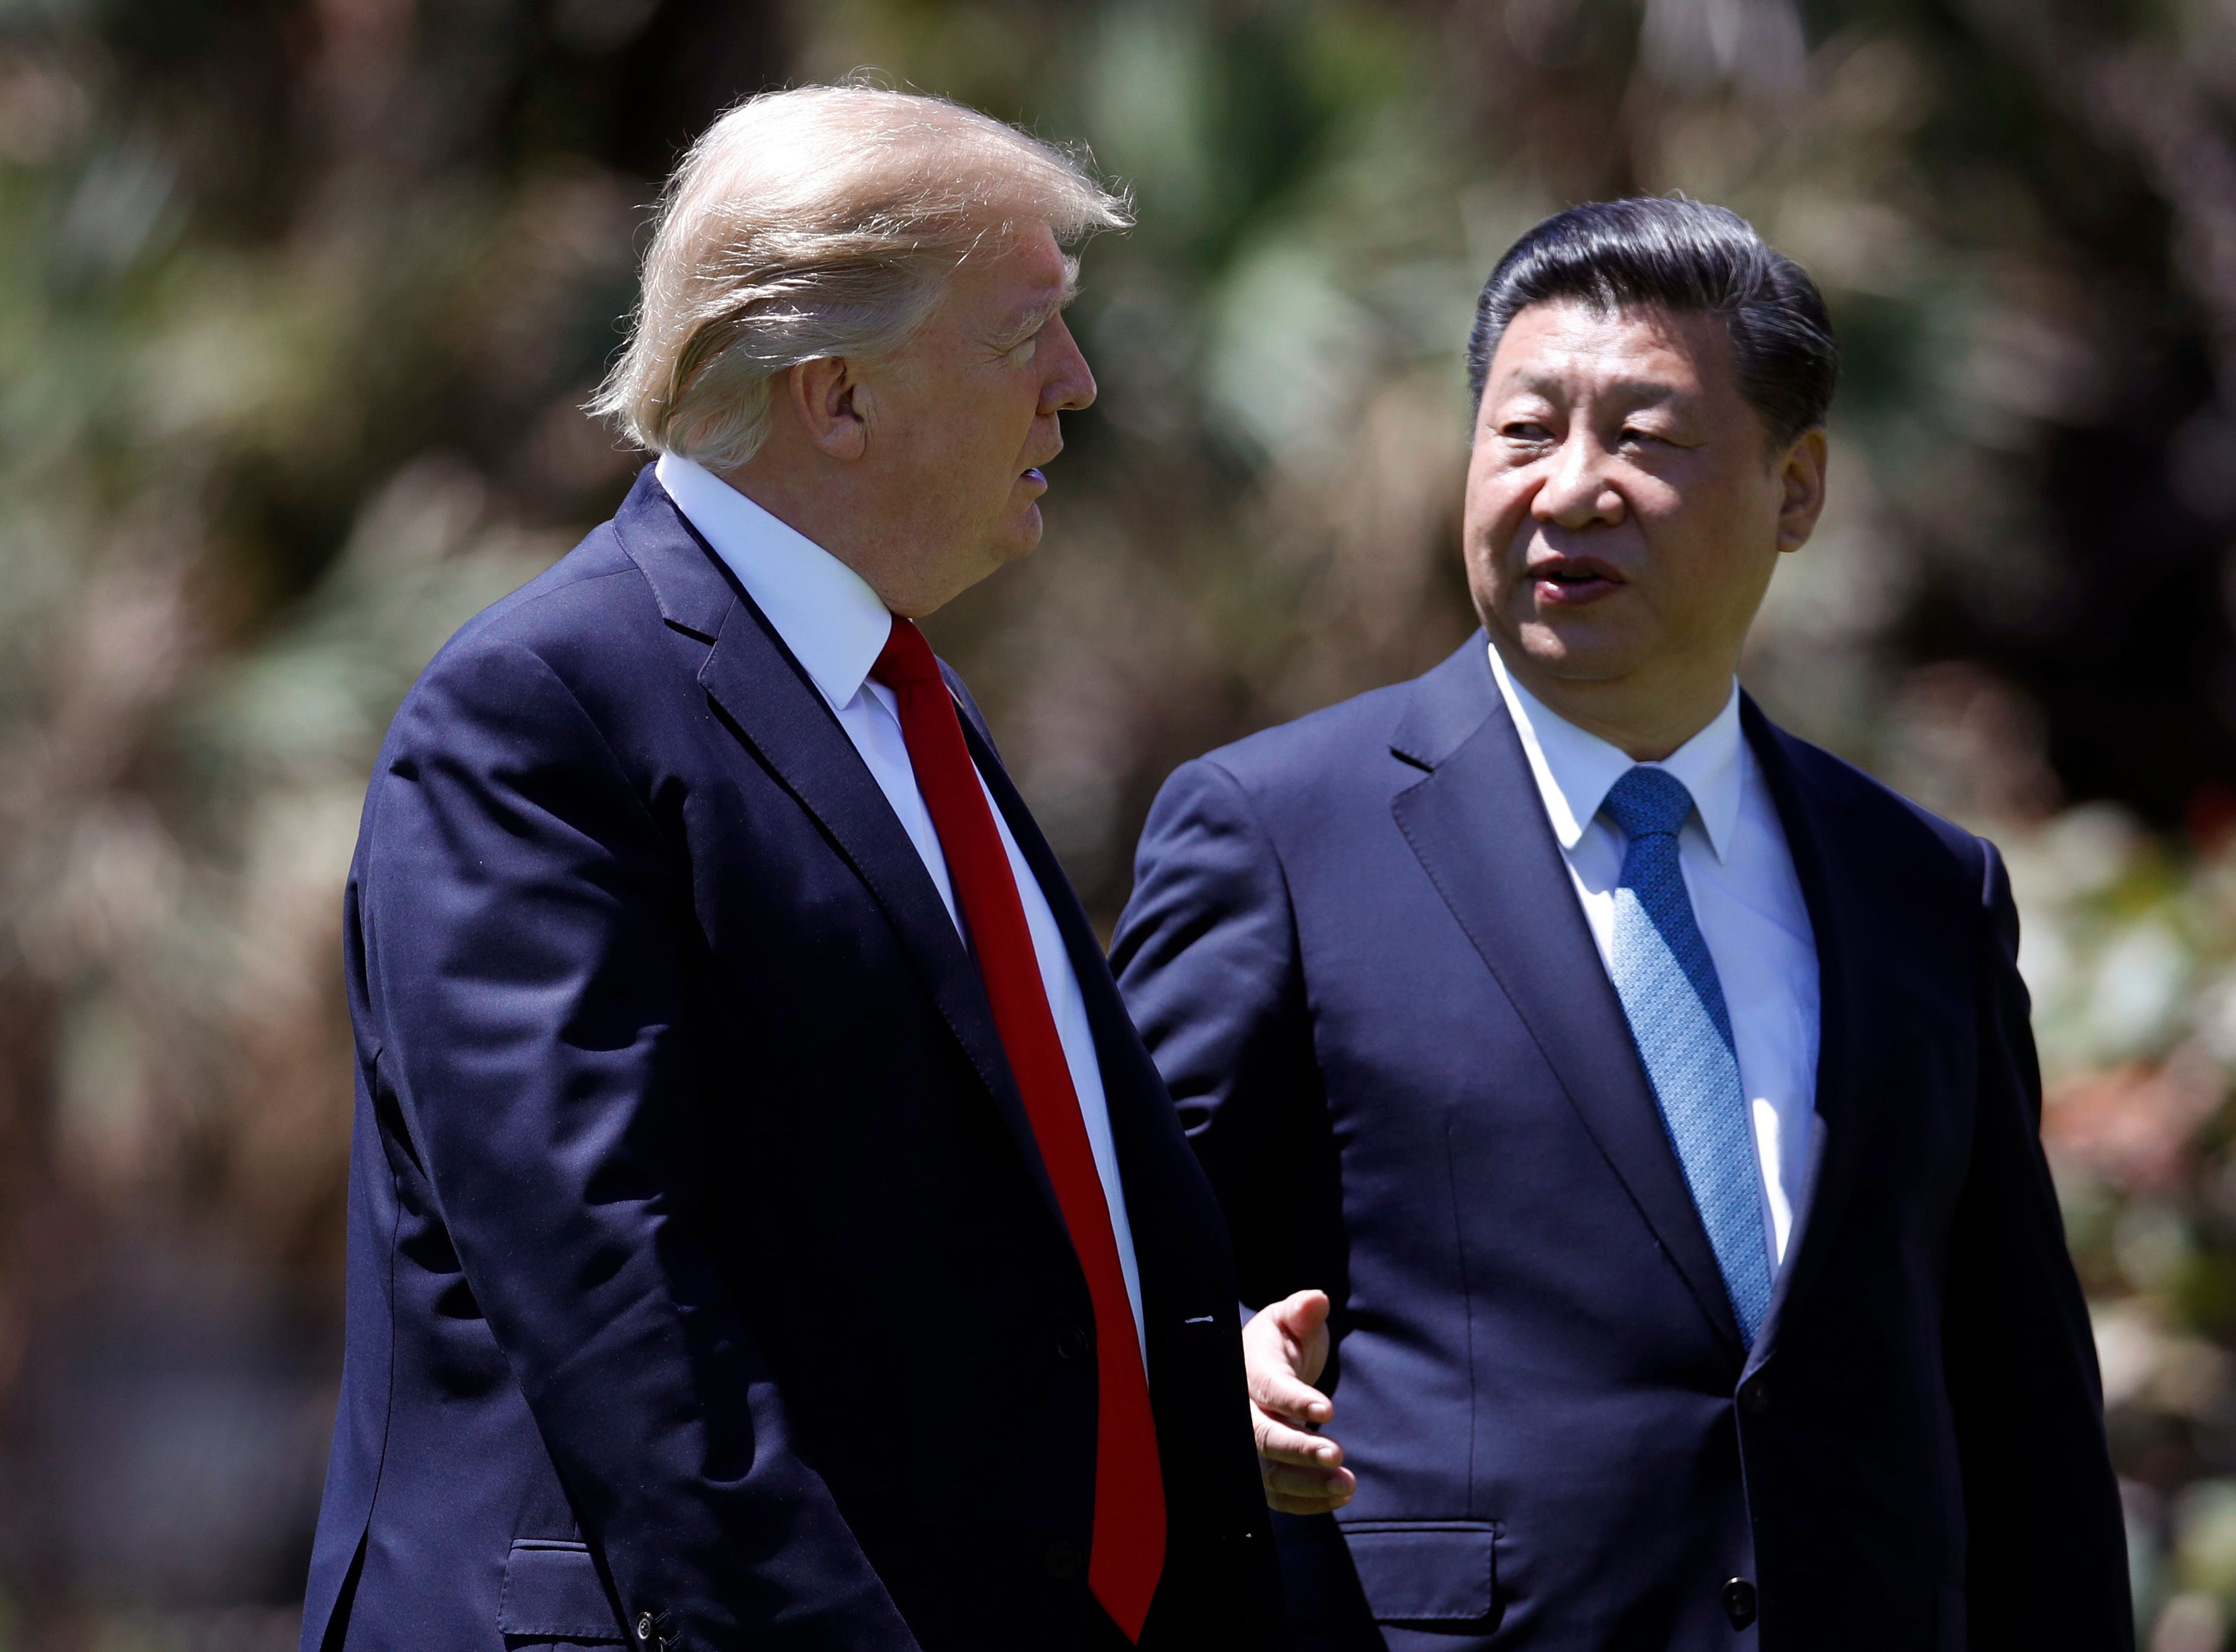 Trade war update: White House expects China to retaliate on tariffs